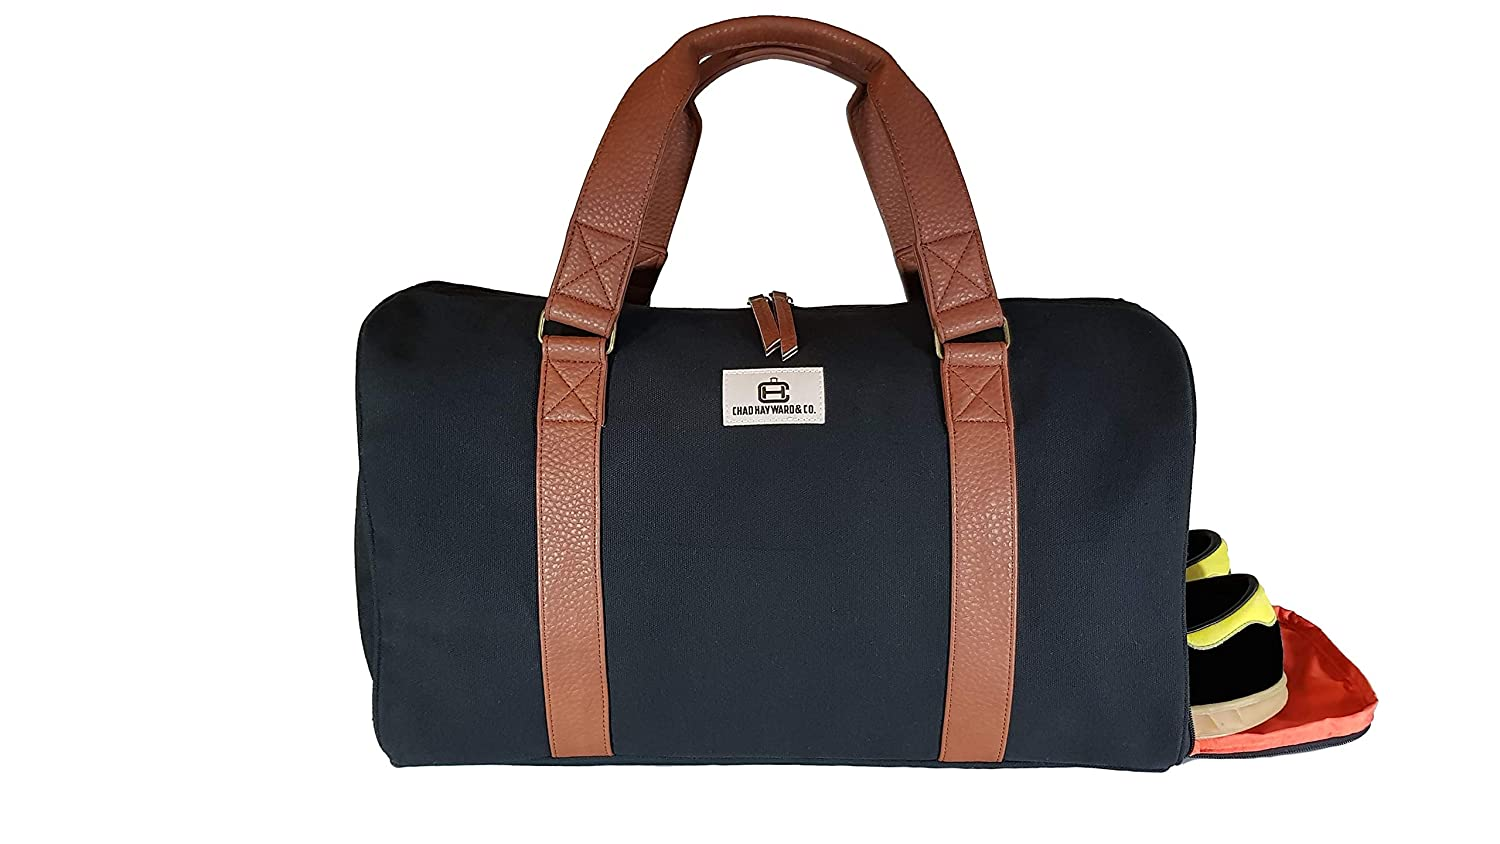 Chad Hayward   Co Adam Sports Duffle Holdall Bag with Shoe Compartment for Travel  Gym Black Canvas 34L  Amazon.co.uk  Sports   Outdoors 71ec3cc2a6c60